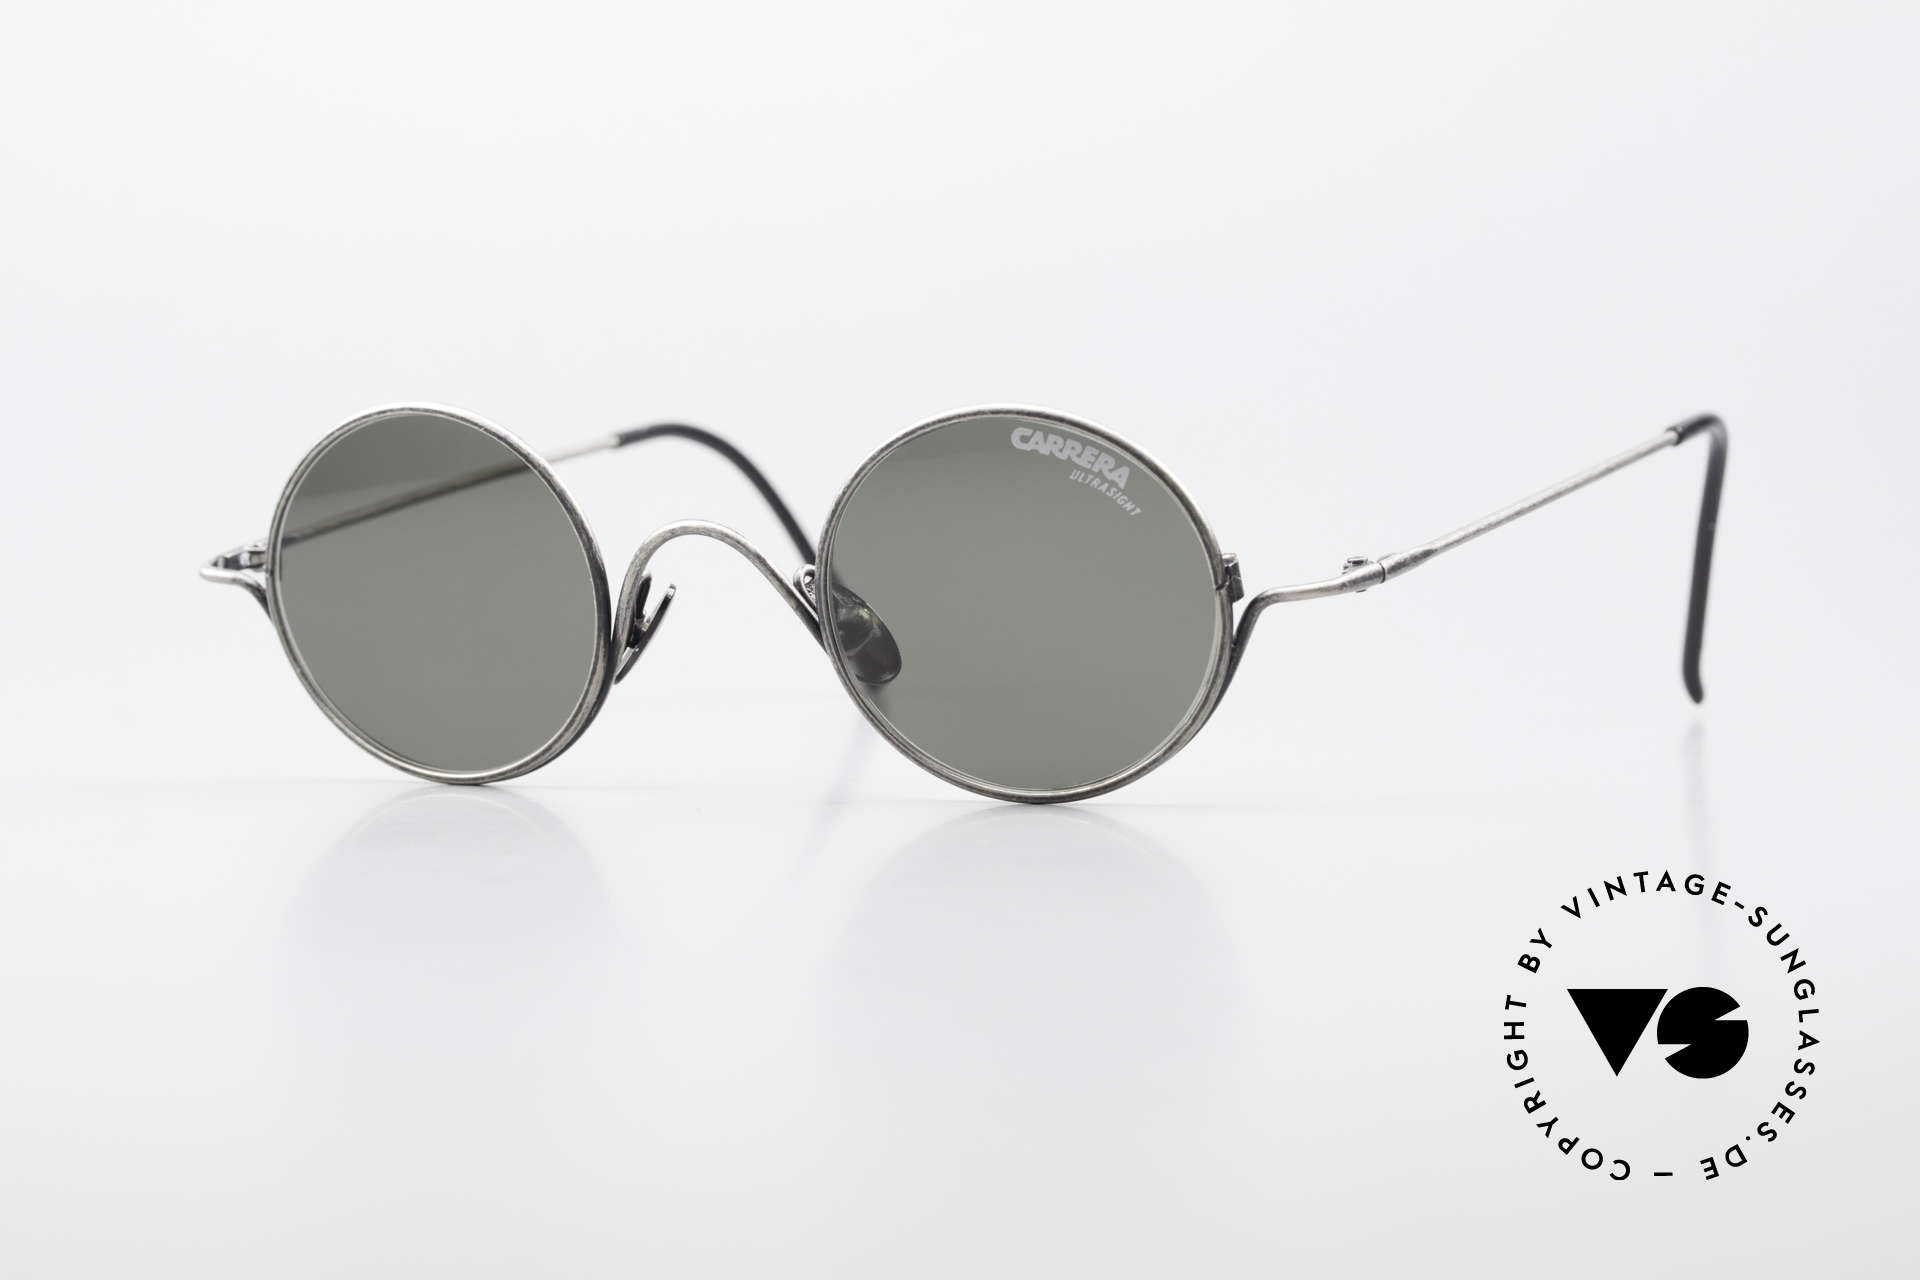 Carrera 5790 Small Round Vintage Glasses, small round CARRERA sunglasses from the early 90's, Made for Men and Women